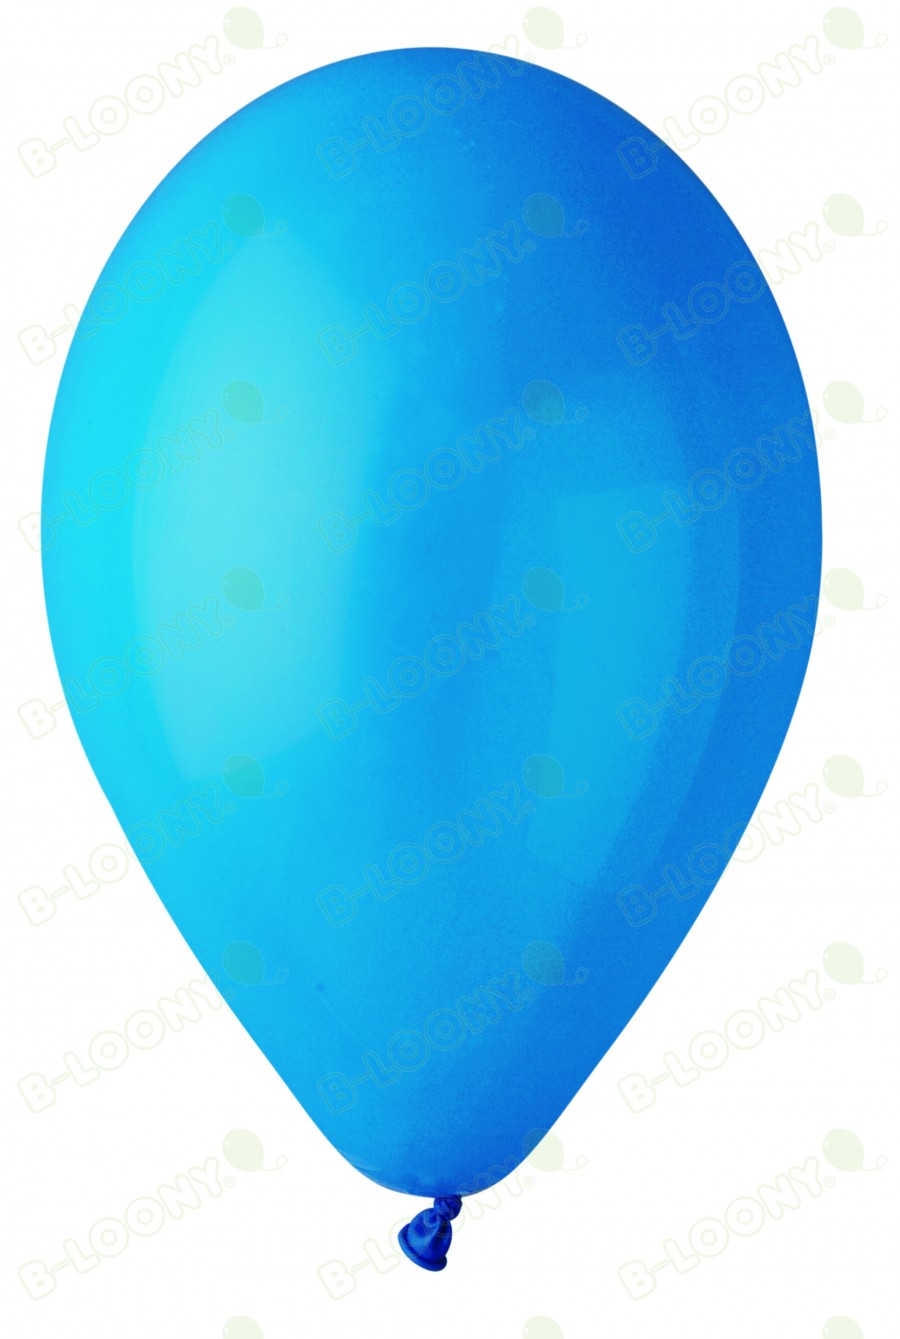 10 Inch Balloon, Printed 1 Colour, 1 Side